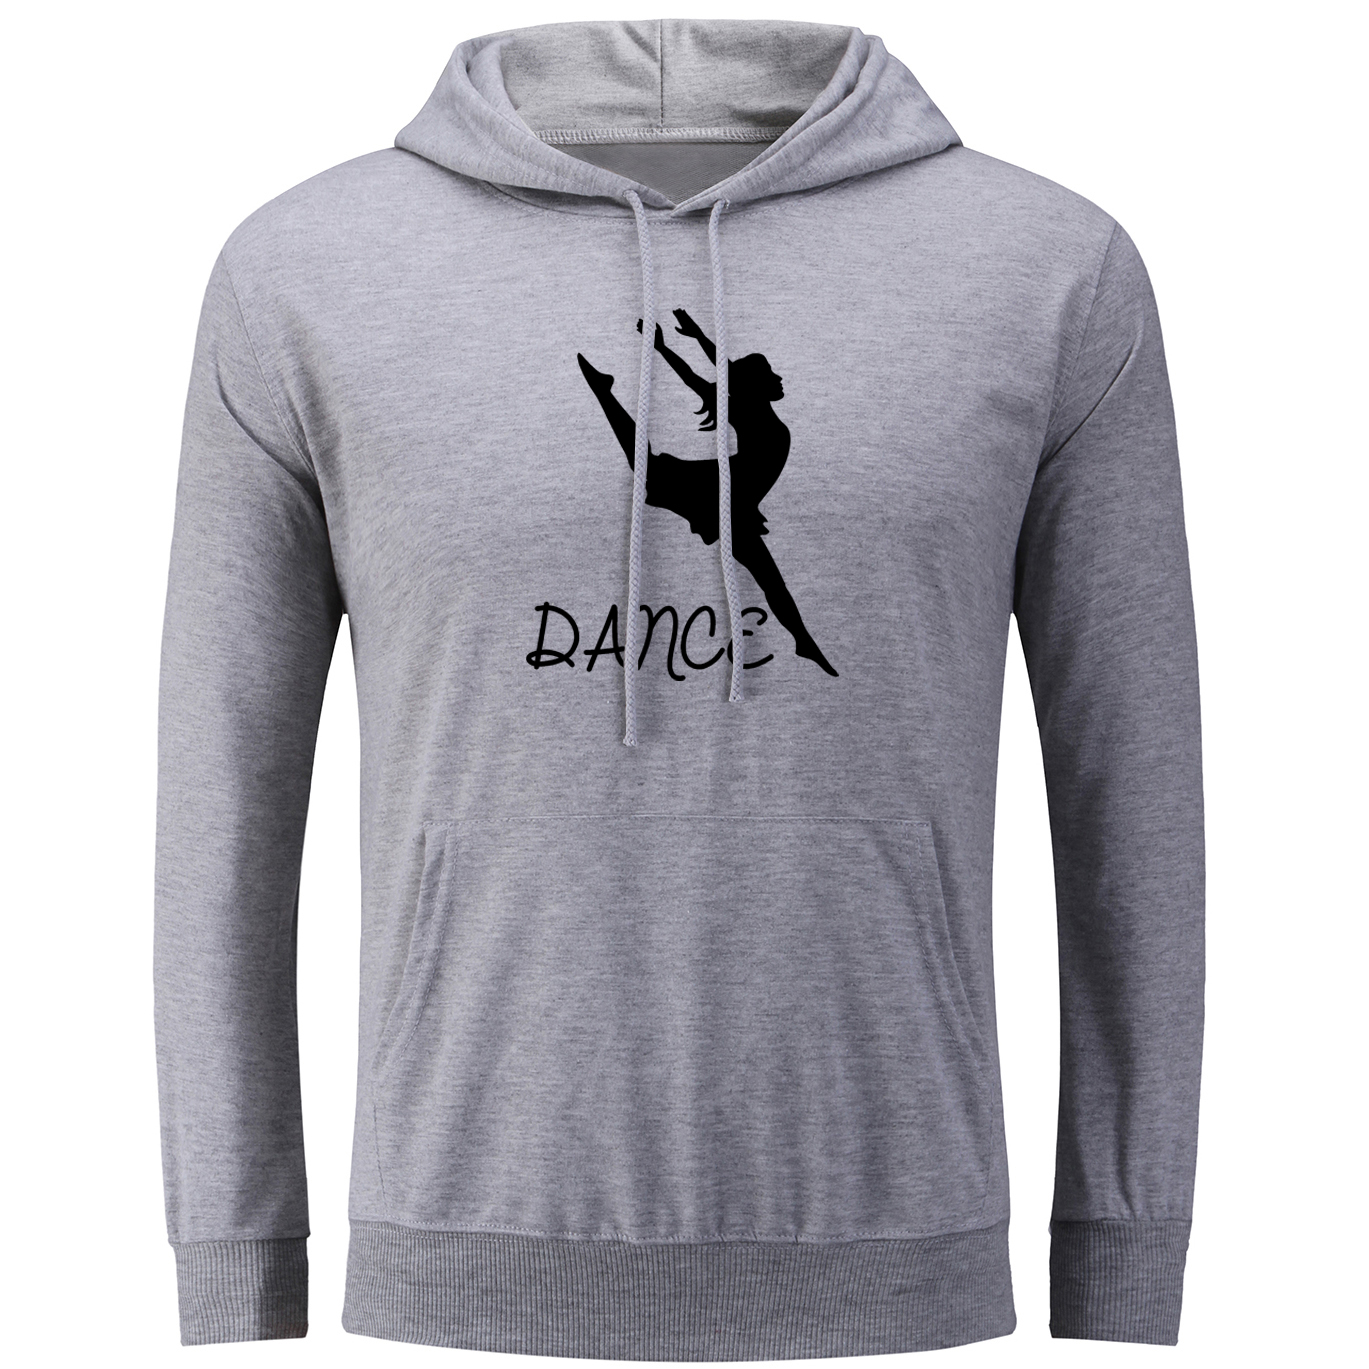 iDzn Womens Hoodies Fashion Dance Design Sweatshirts Long Sleeve Female Tops Hip Hop Cotton Pullovers Spring Autumn Winter Coat